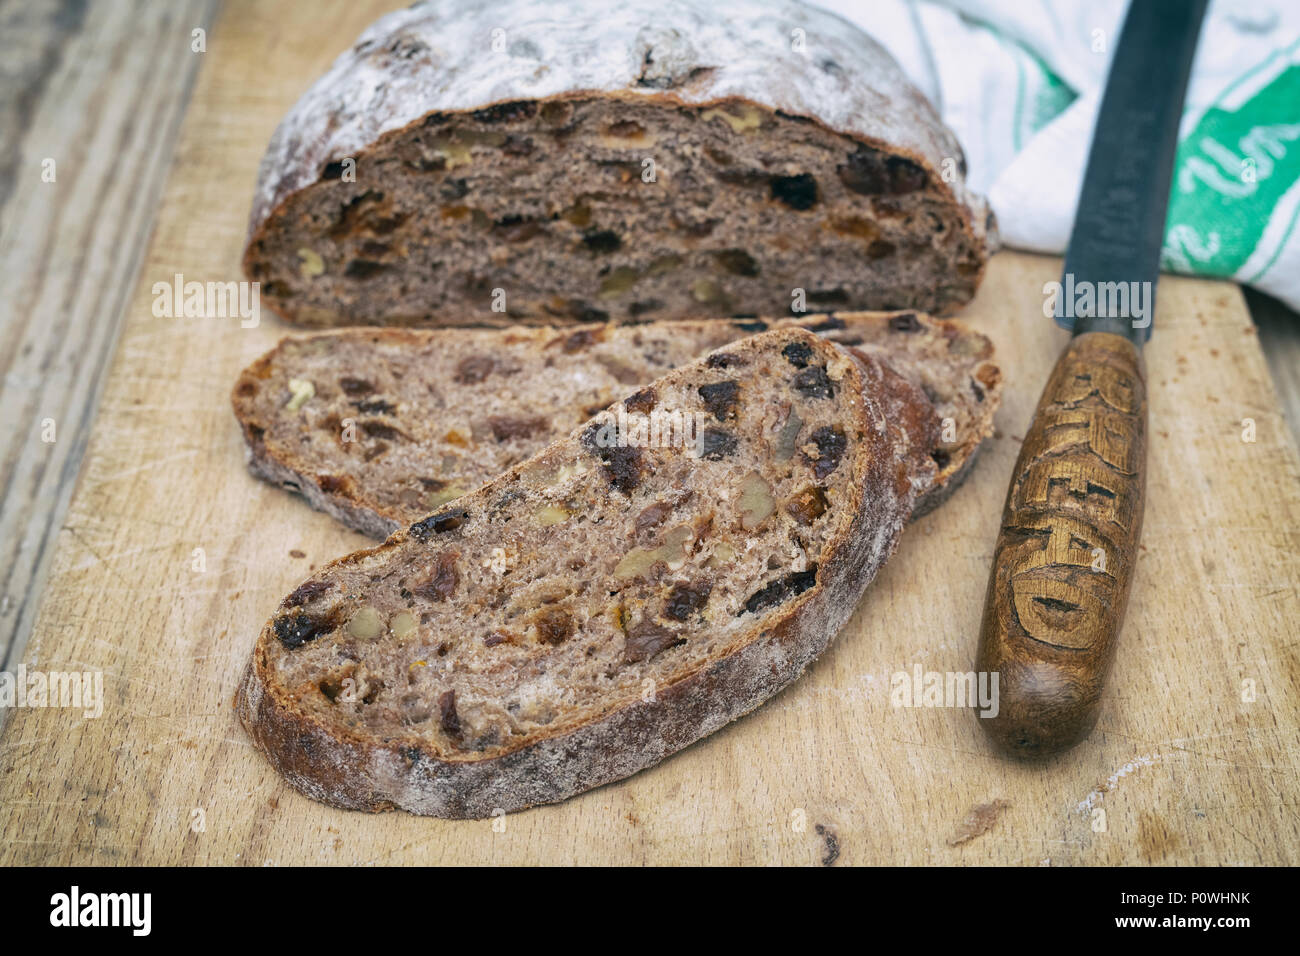 Organic fruit sourdough loaf with bread knife on a wooden board. UK. Vintage filter applied Stock Photo